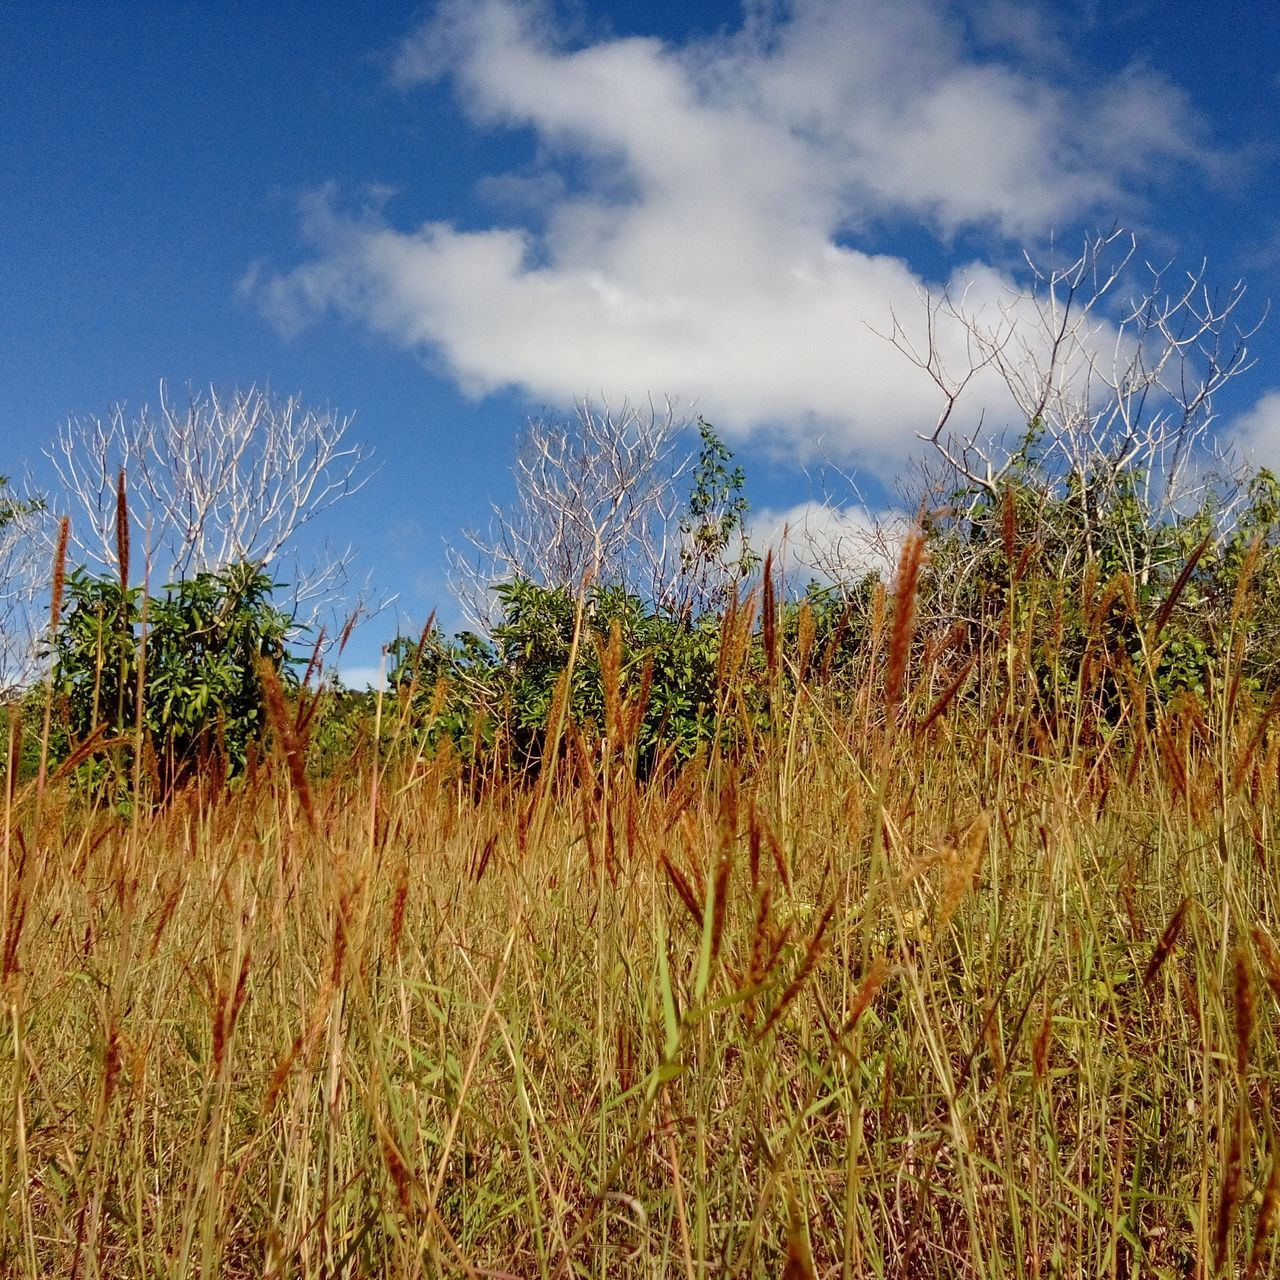 growth, nature, field, sky, plant, tranquility, beauty in nature, tranquil scene, landscape, outdoors, no people, grass, day